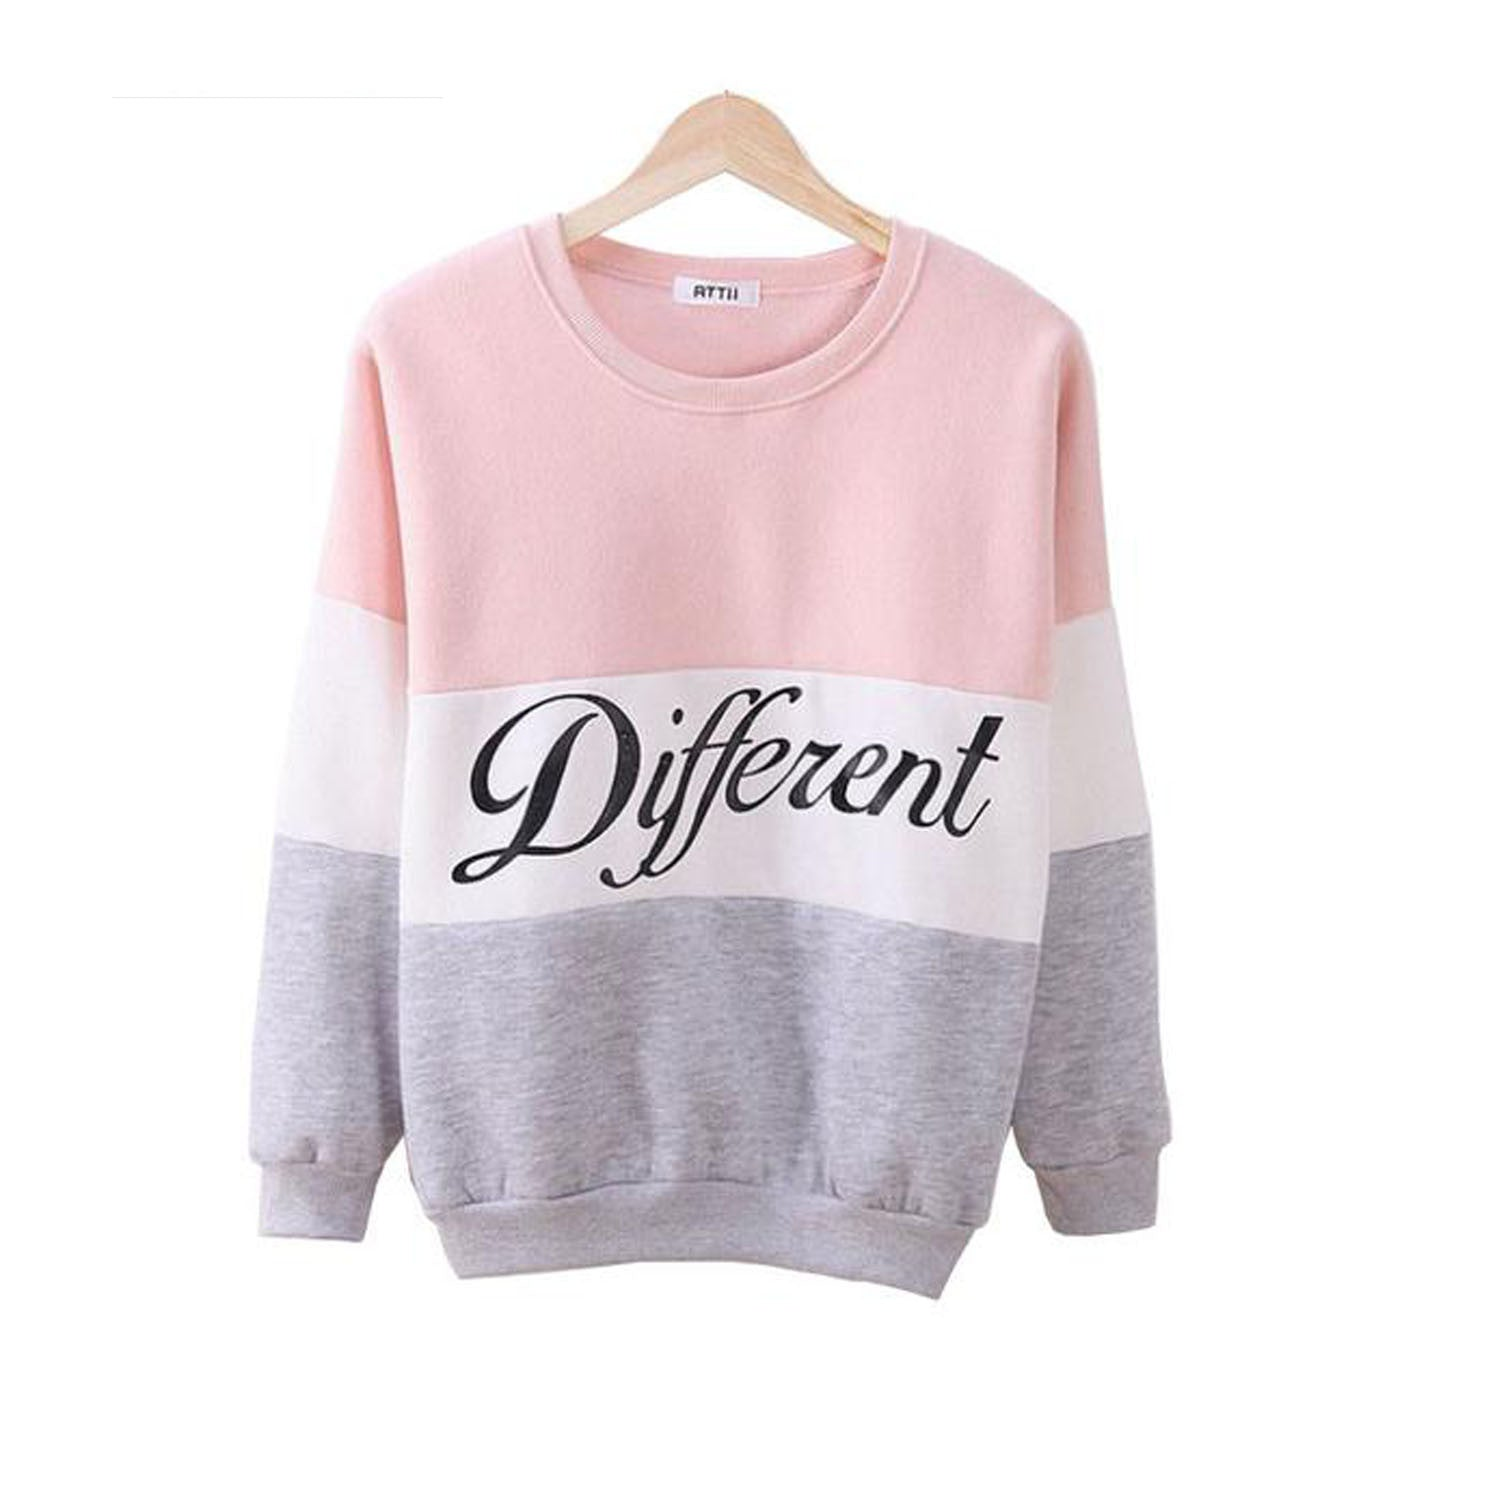 Printed Letters Tracksuit For Women's Casual Sweatshirt Hoodie